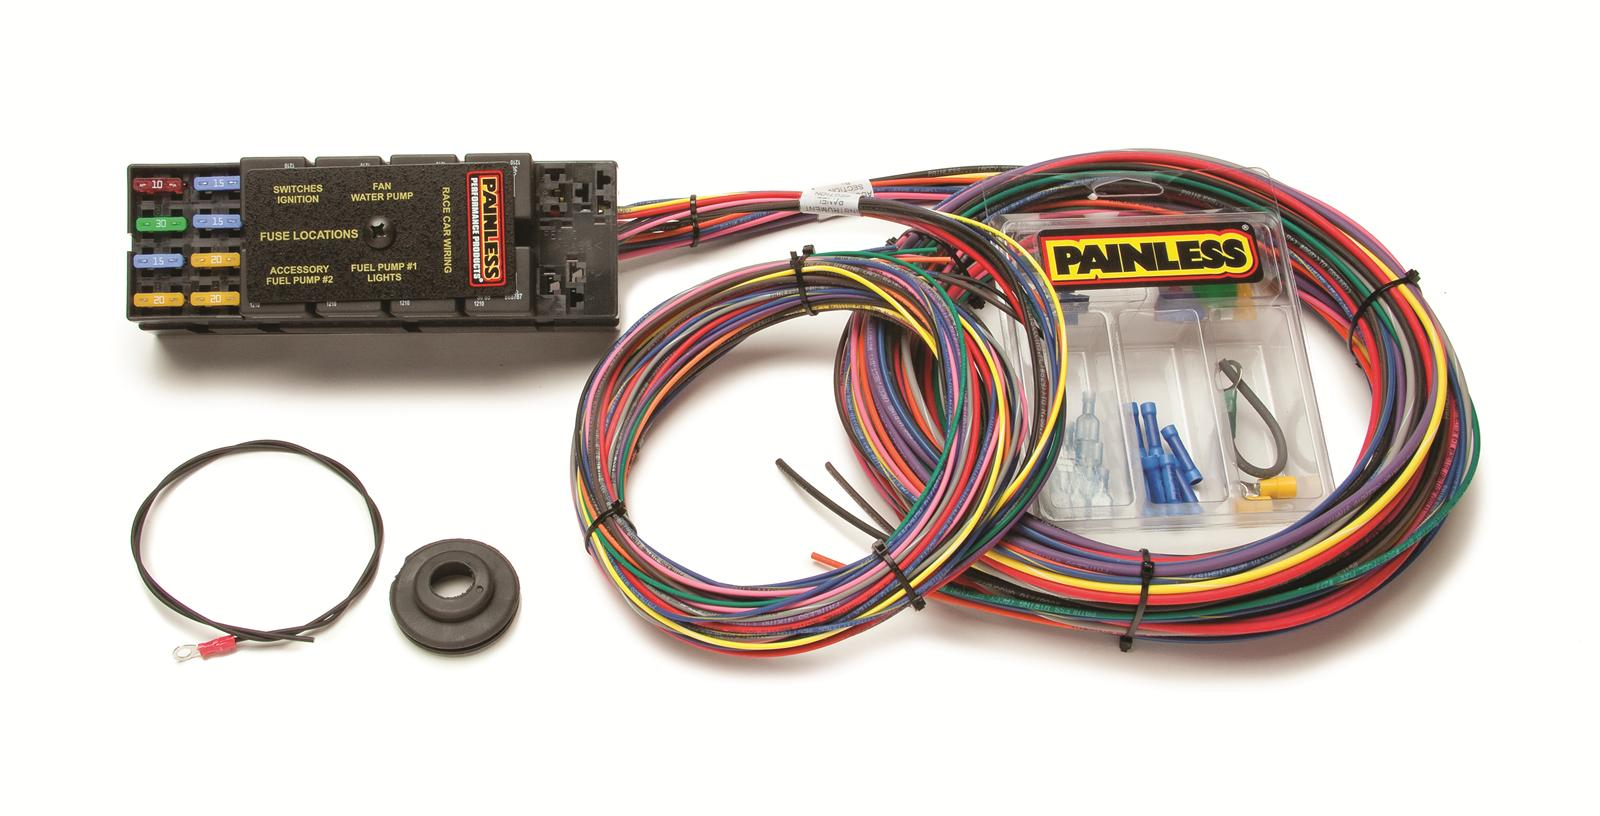 hight resolution of painless performance 10 circuit race only harnesses 50001 free painless wiring harness kit painless performance 10